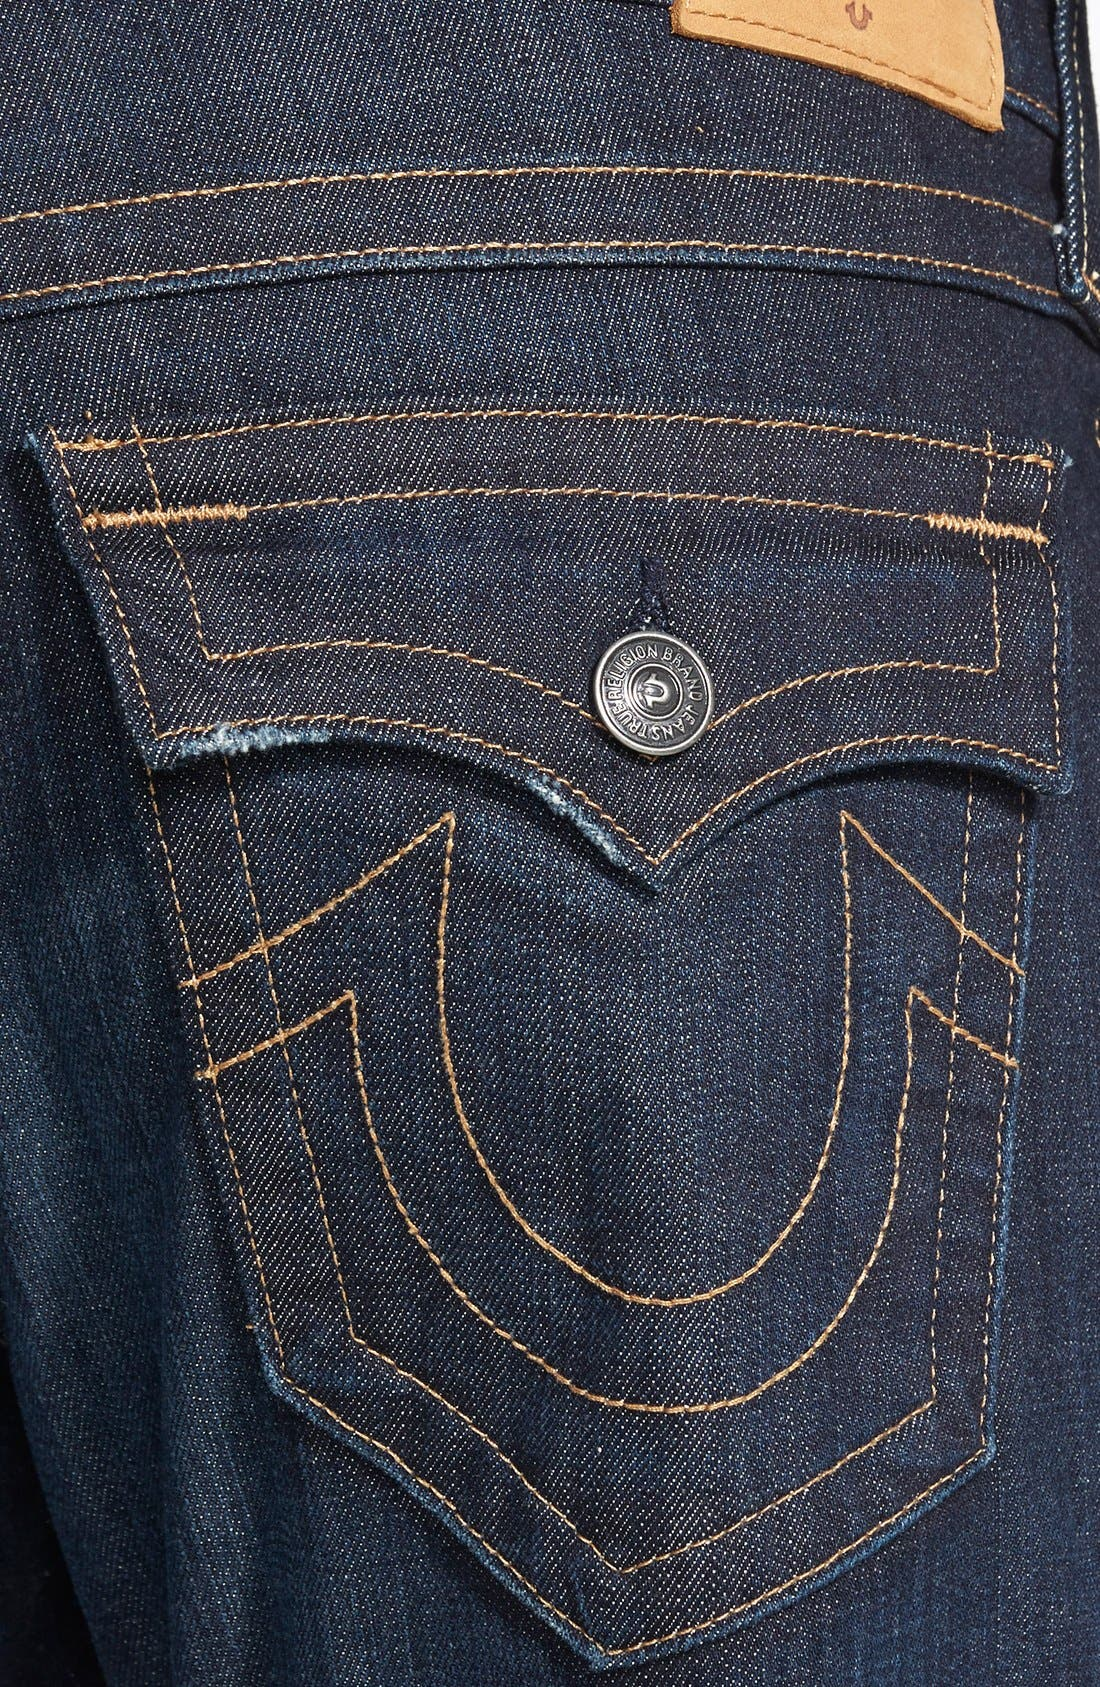 Alternate Image 4  - True Religion Brand Jeans 'Ricky' Relaxed Fit Jeans (Wanted Man)